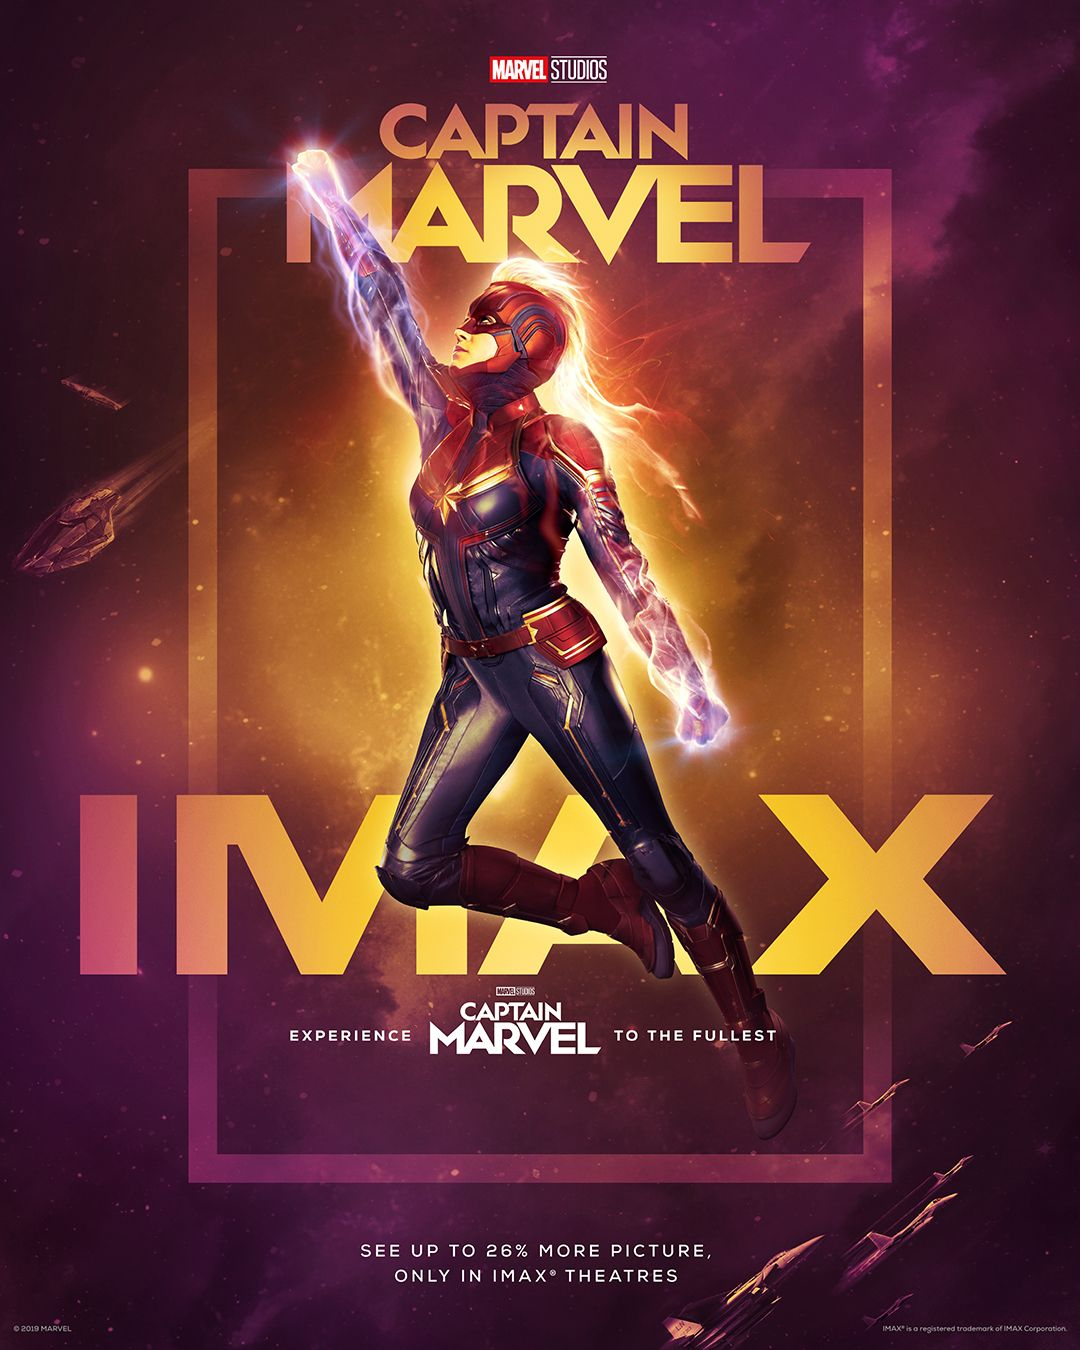 Captain-Marvel-IMAX-1080x1350.jpg?q=50&f